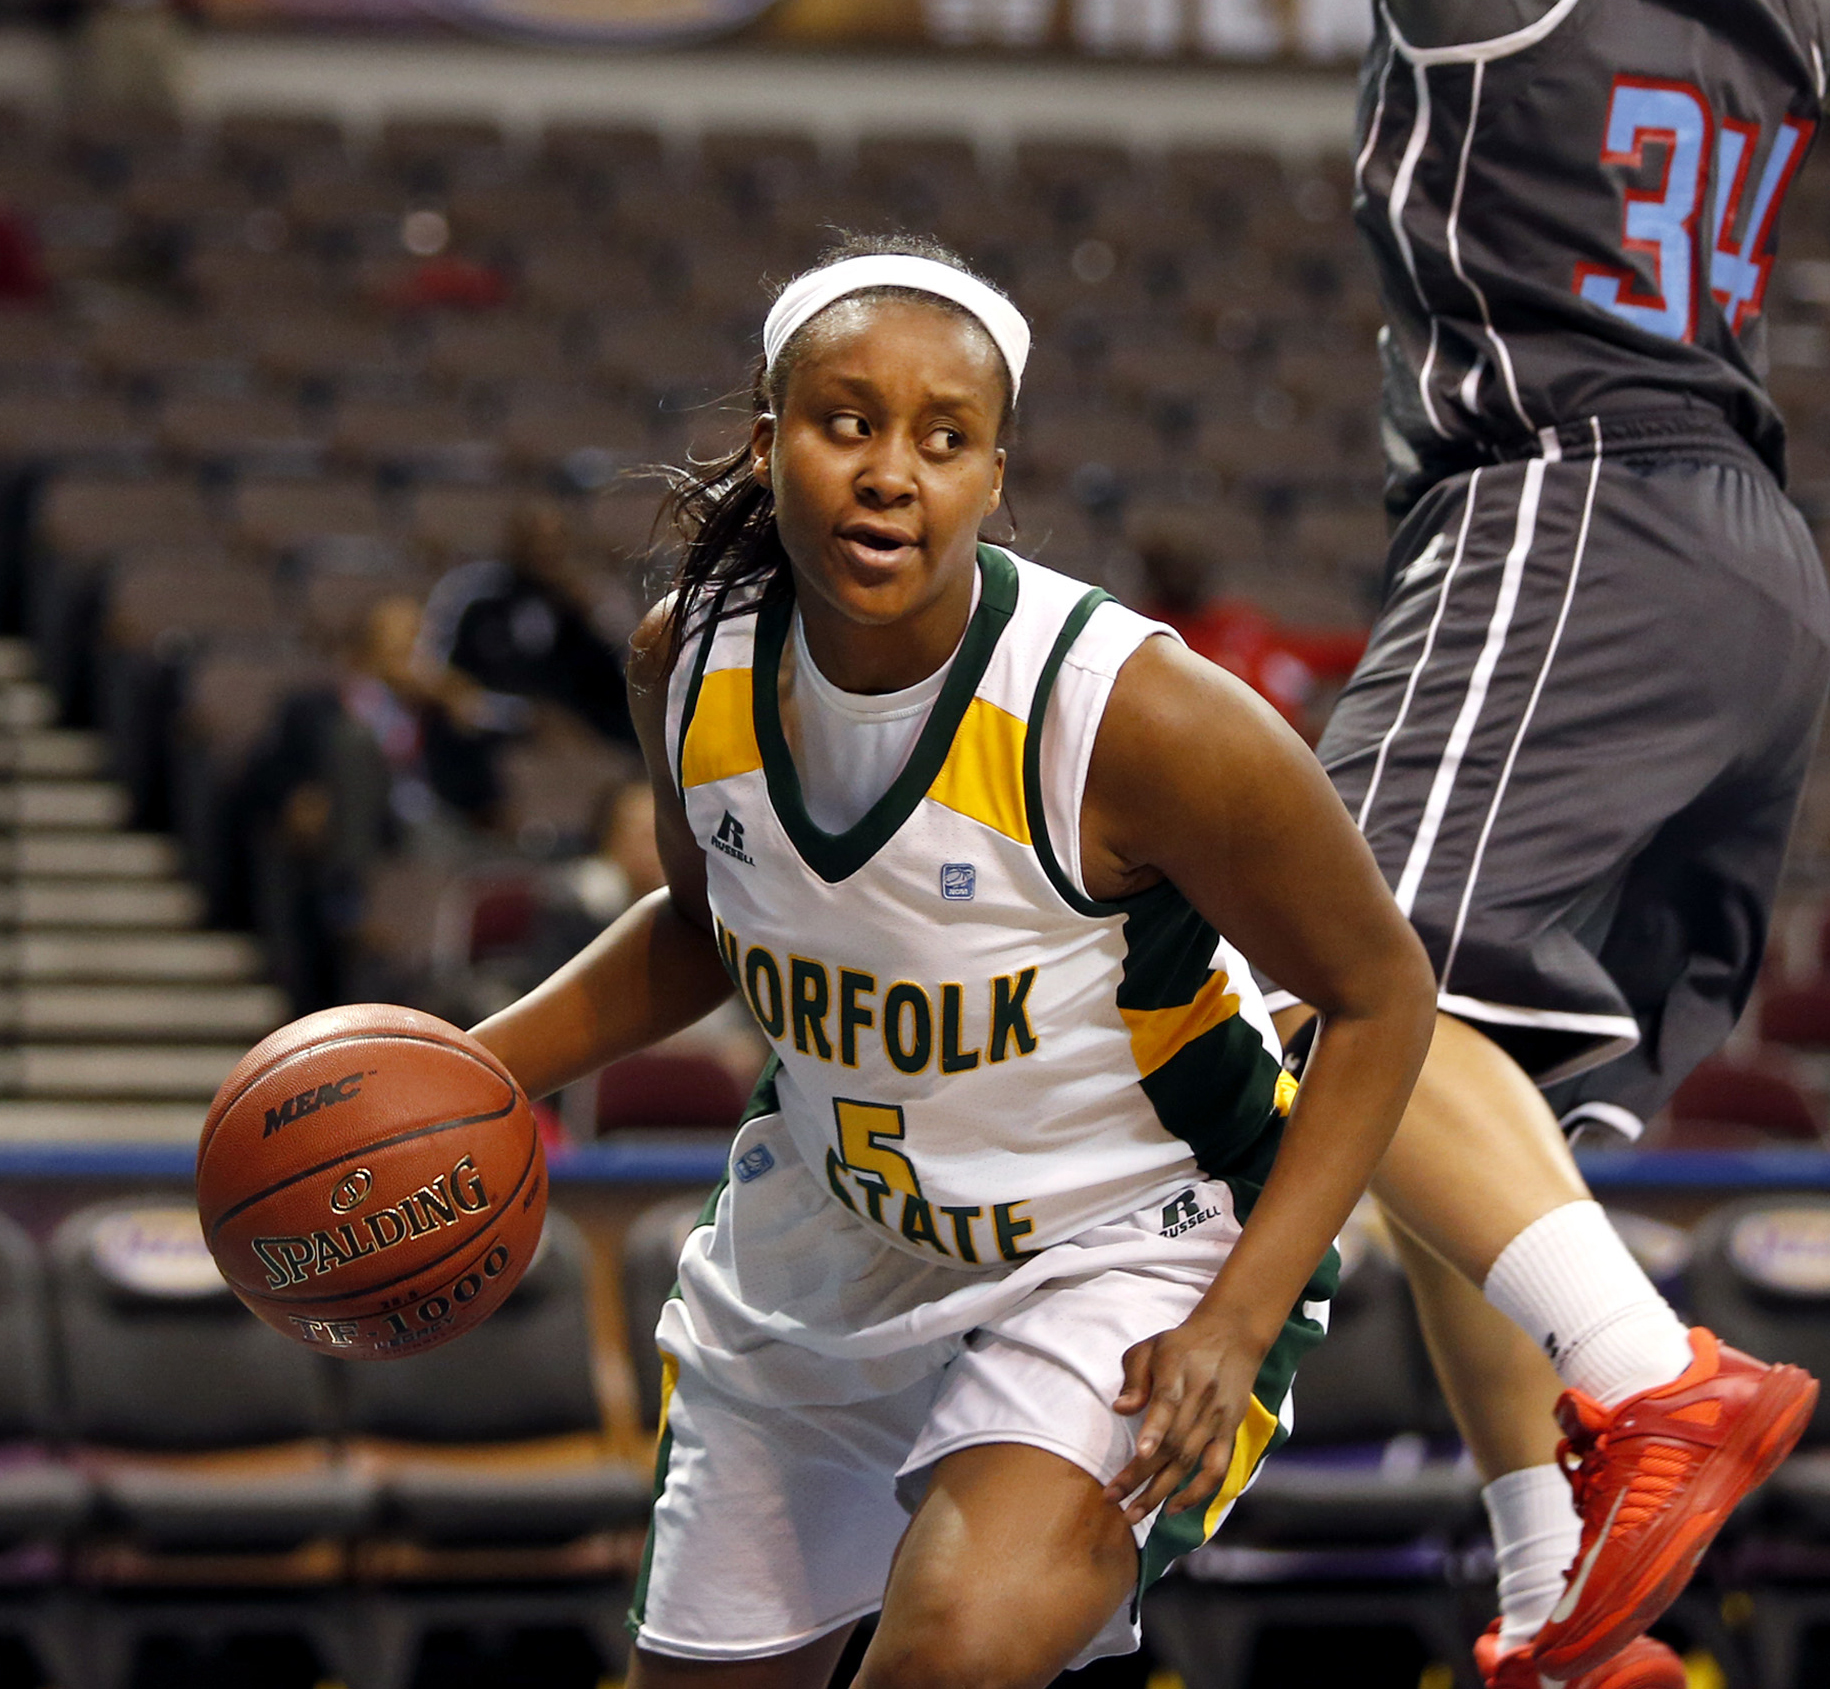 FILE - In this March 9, 2015, file photo, Norfolk State's Amber Brown moves the ball againstt Delaware State during a first round game at the Mid-Eastern Athletic Conference NCAA college women's basketball tournament in Norfolk, Va. A week ago, Amber Brow